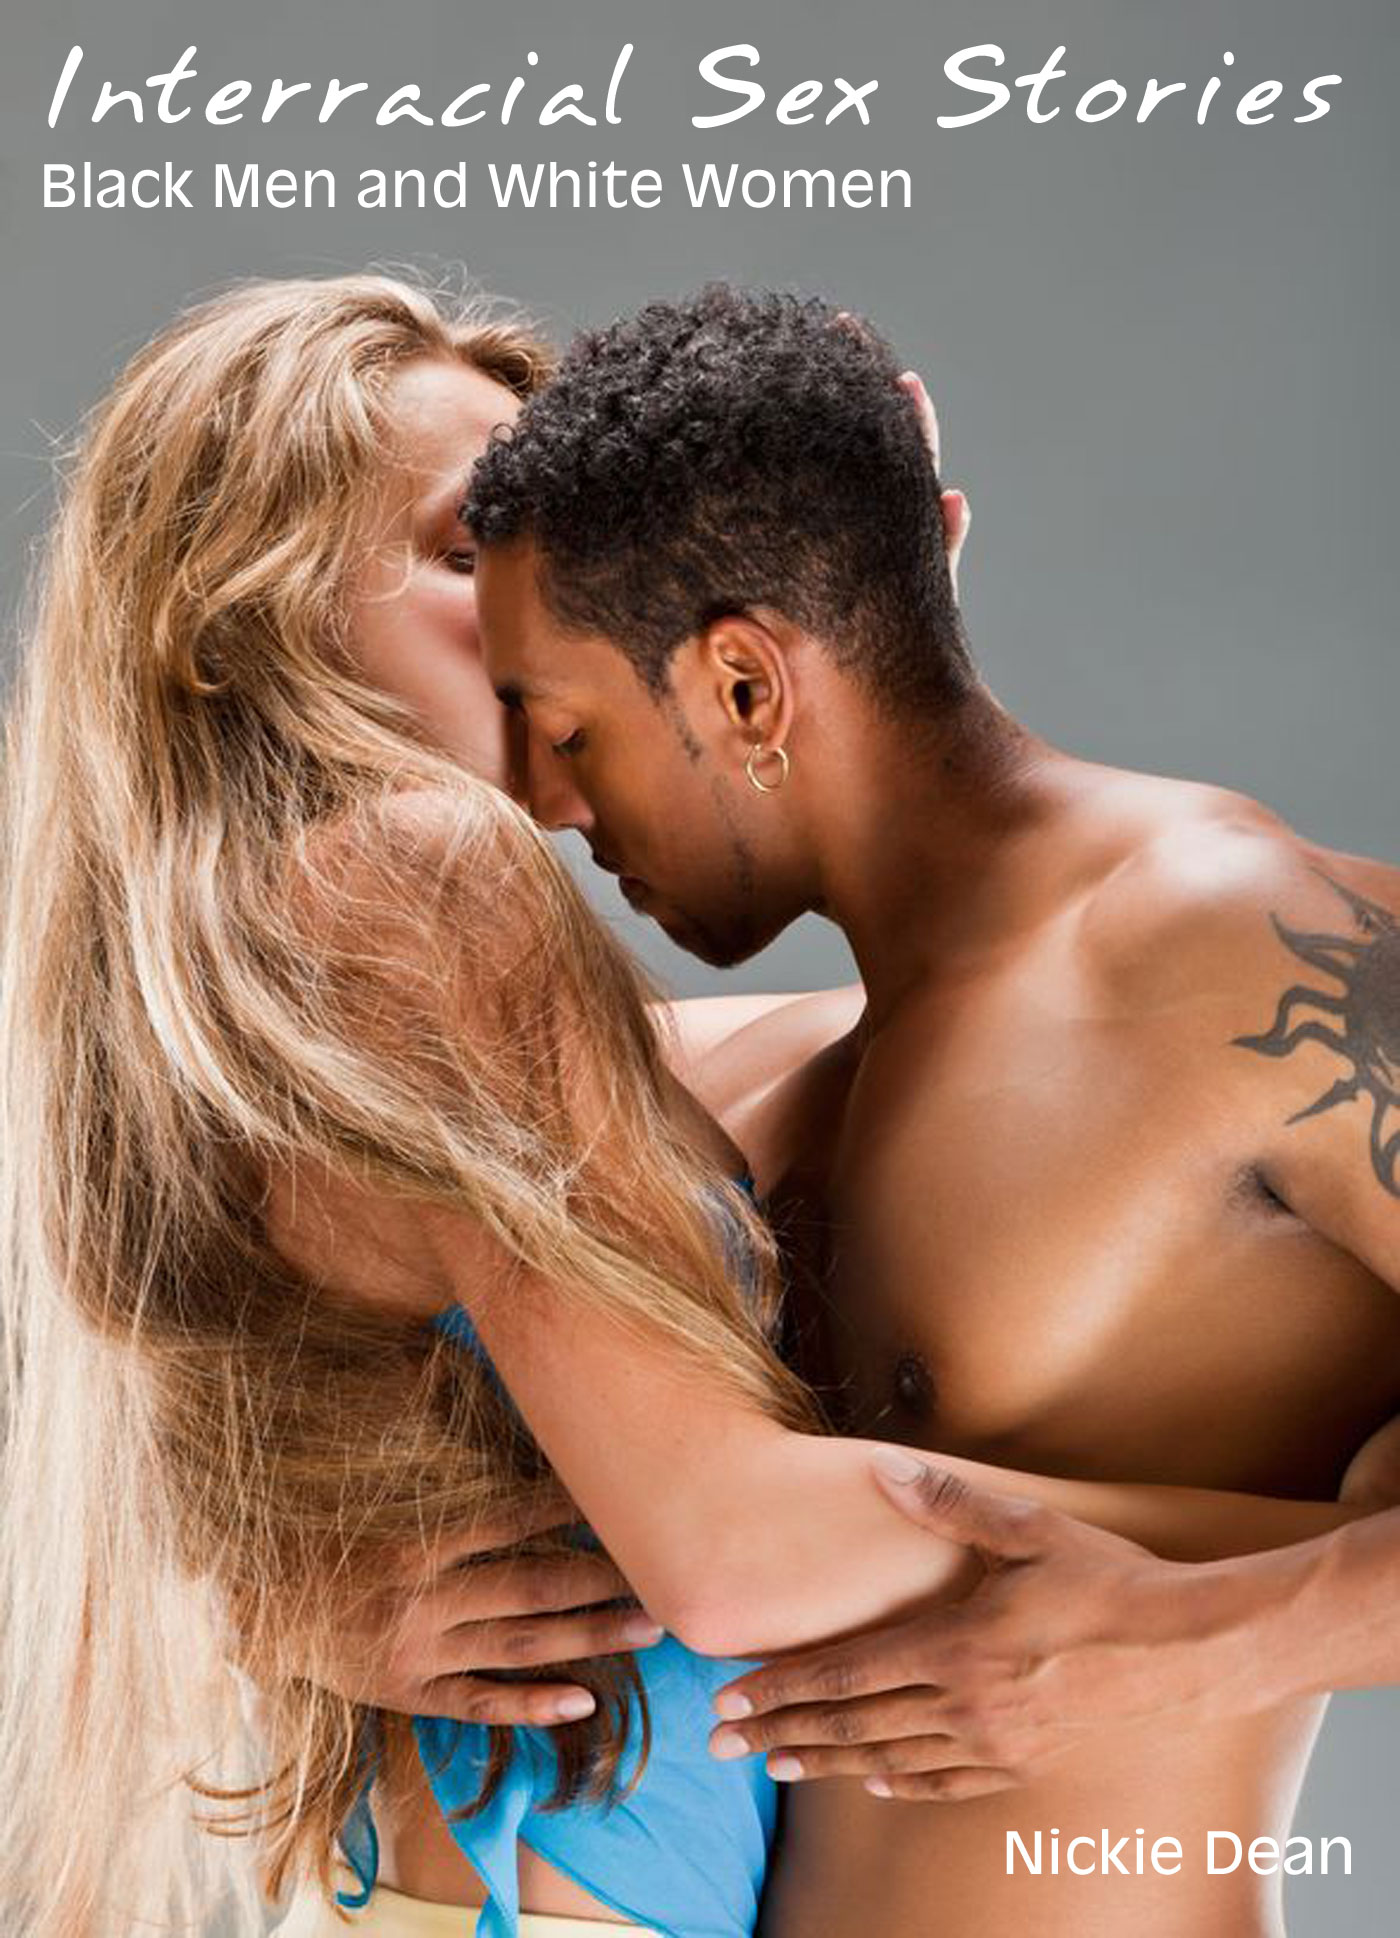 erotic sex stories Interracial